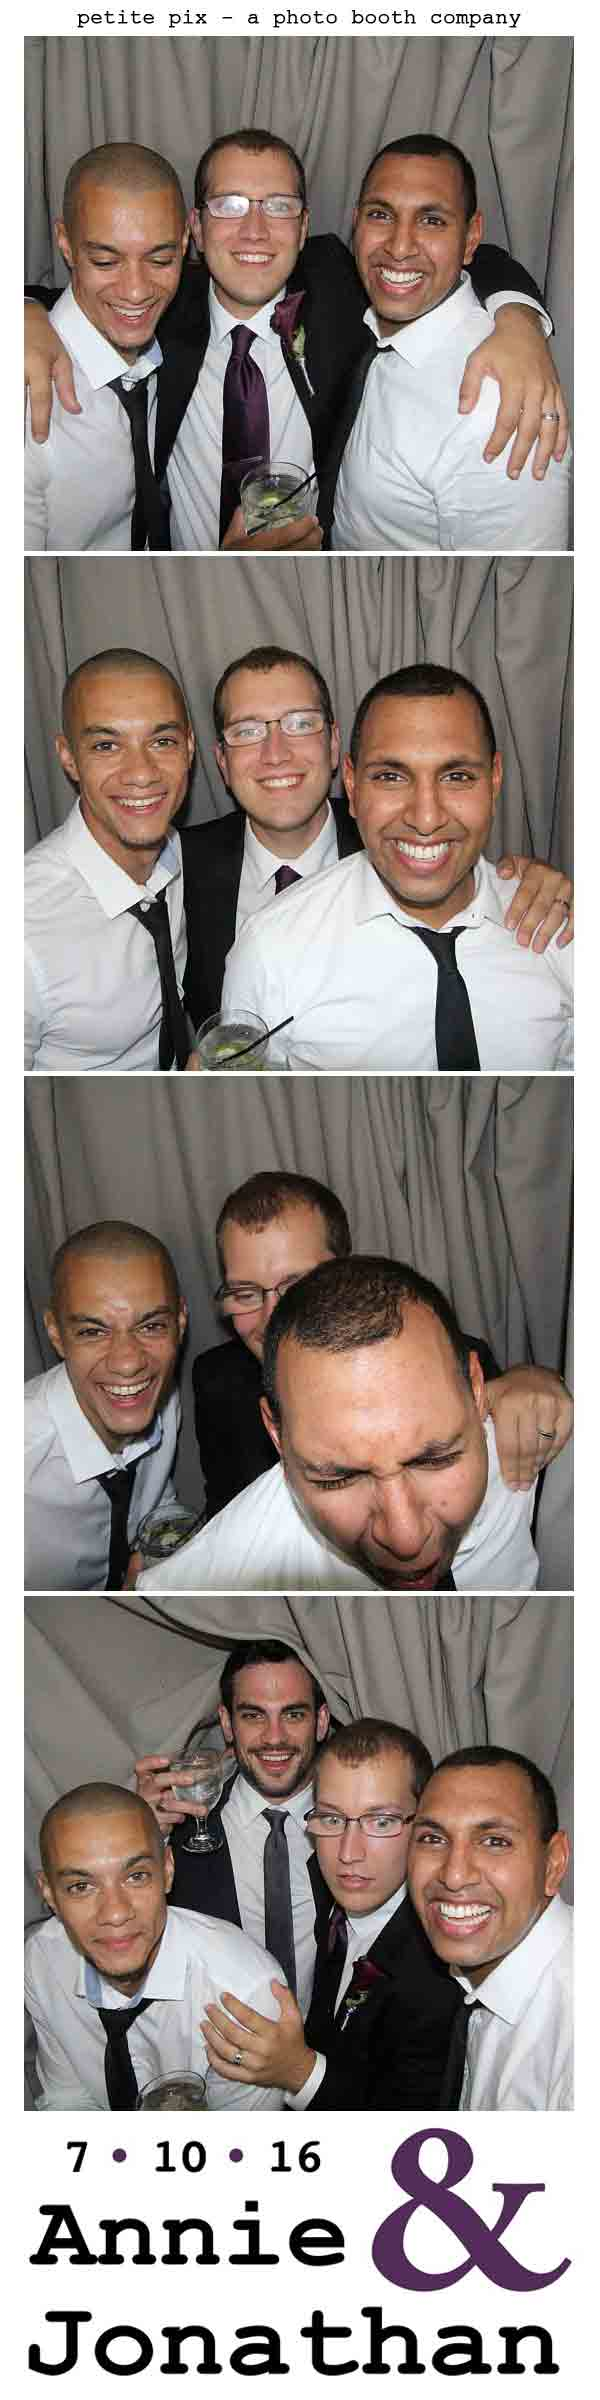 Petite Pix Classic Photo Booth at the Cicada Club in Downtown Los Angeles for Annie and Jonathan's Wedding 73.jpg